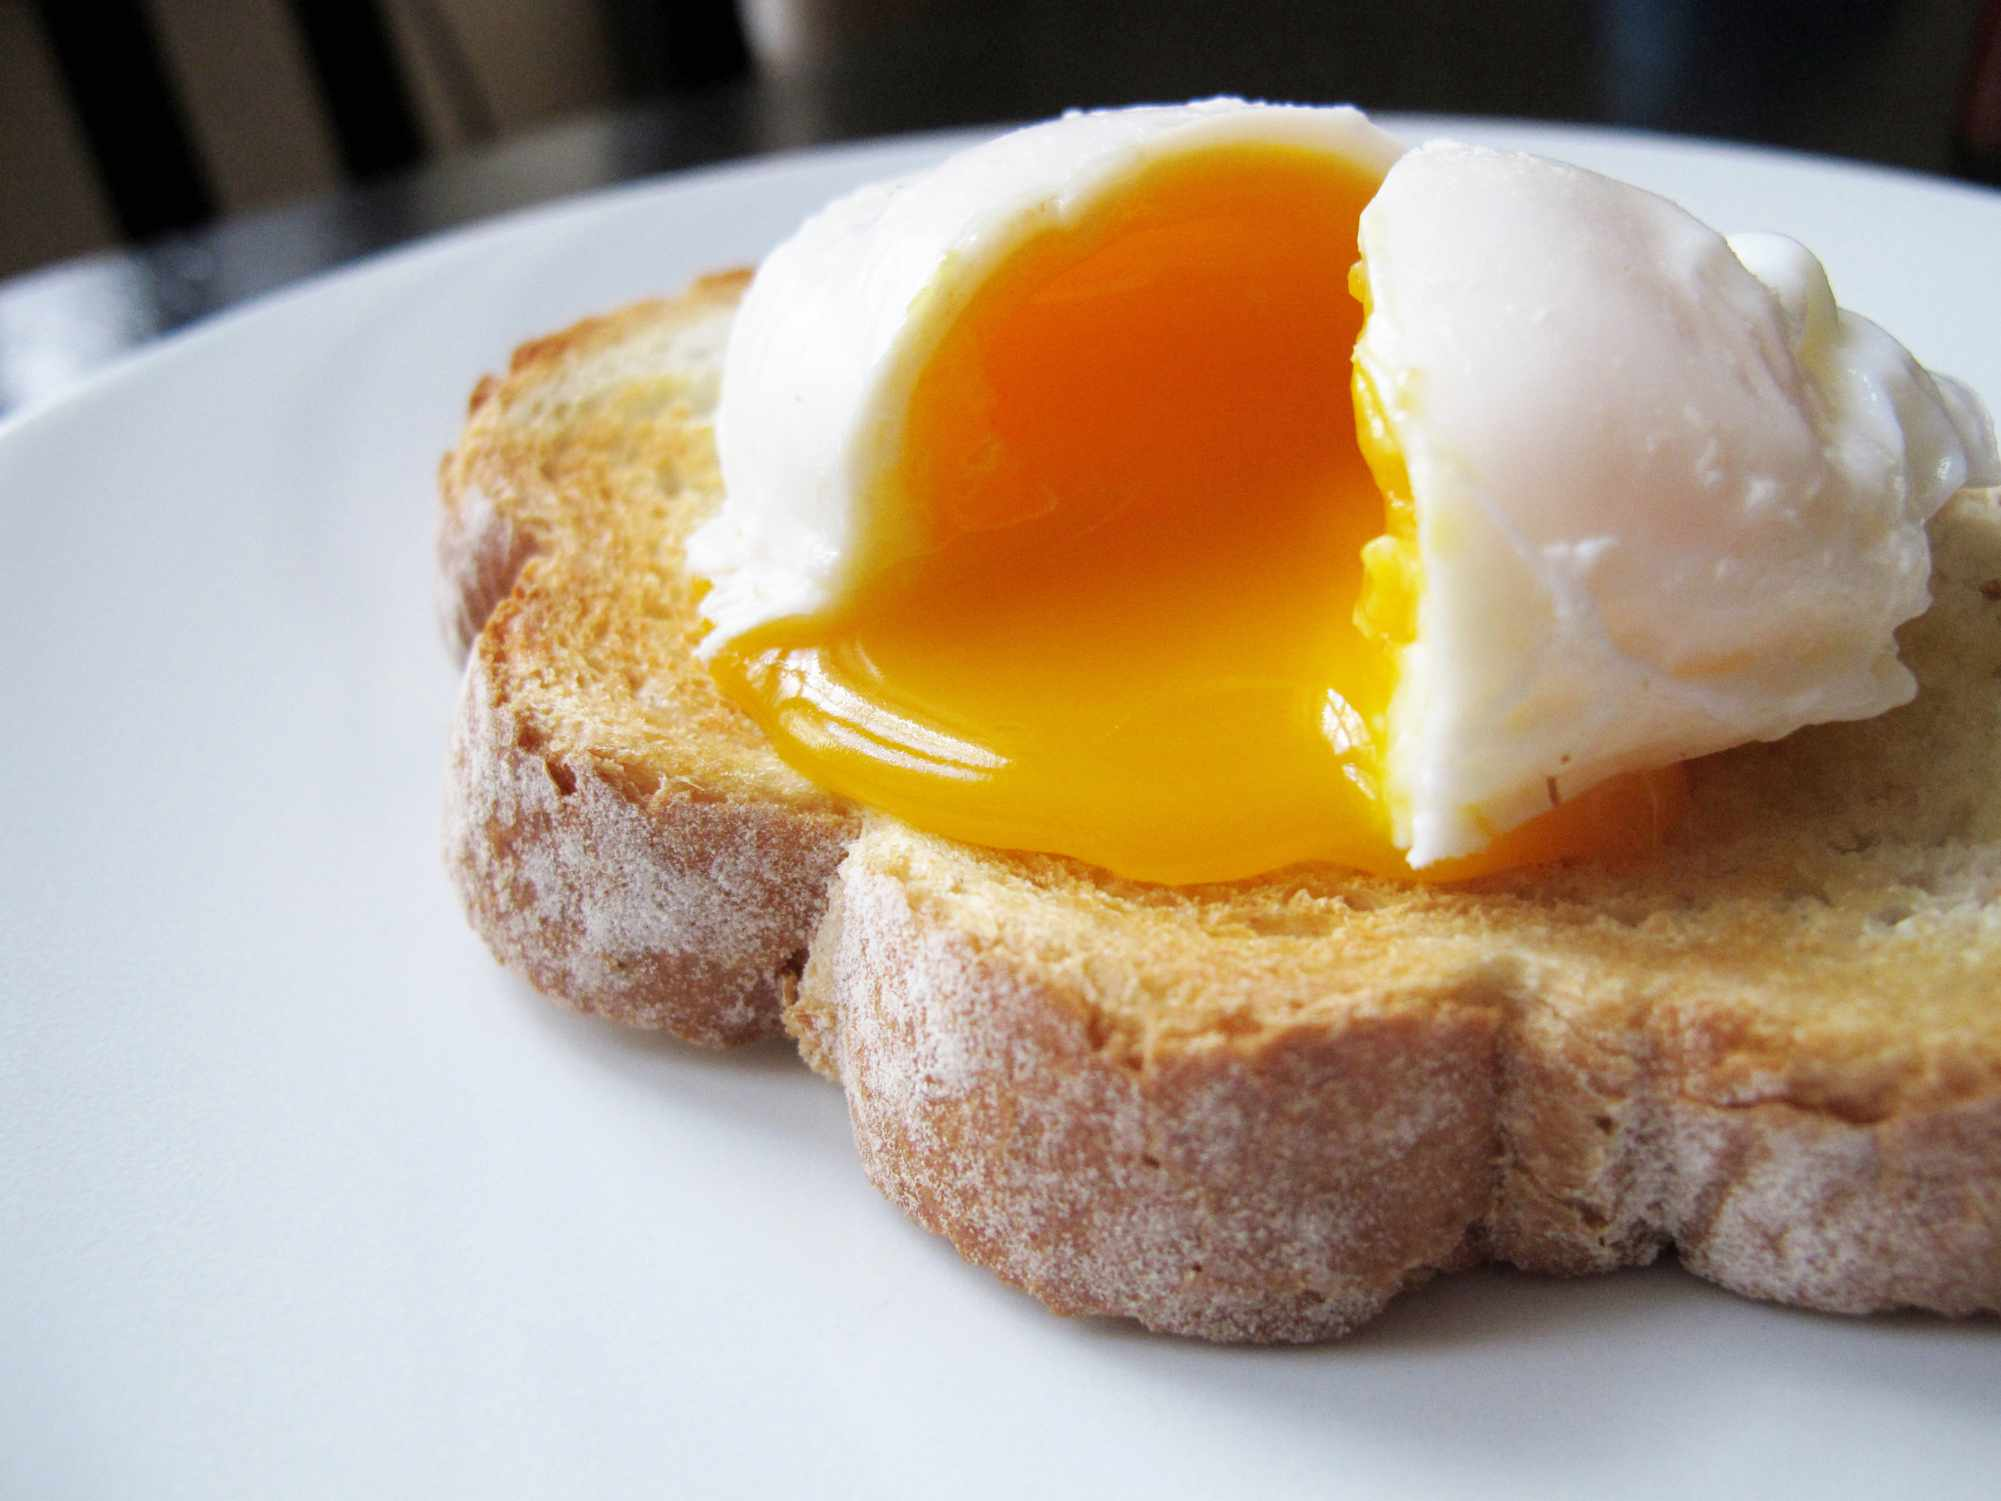 A poached egg on bread